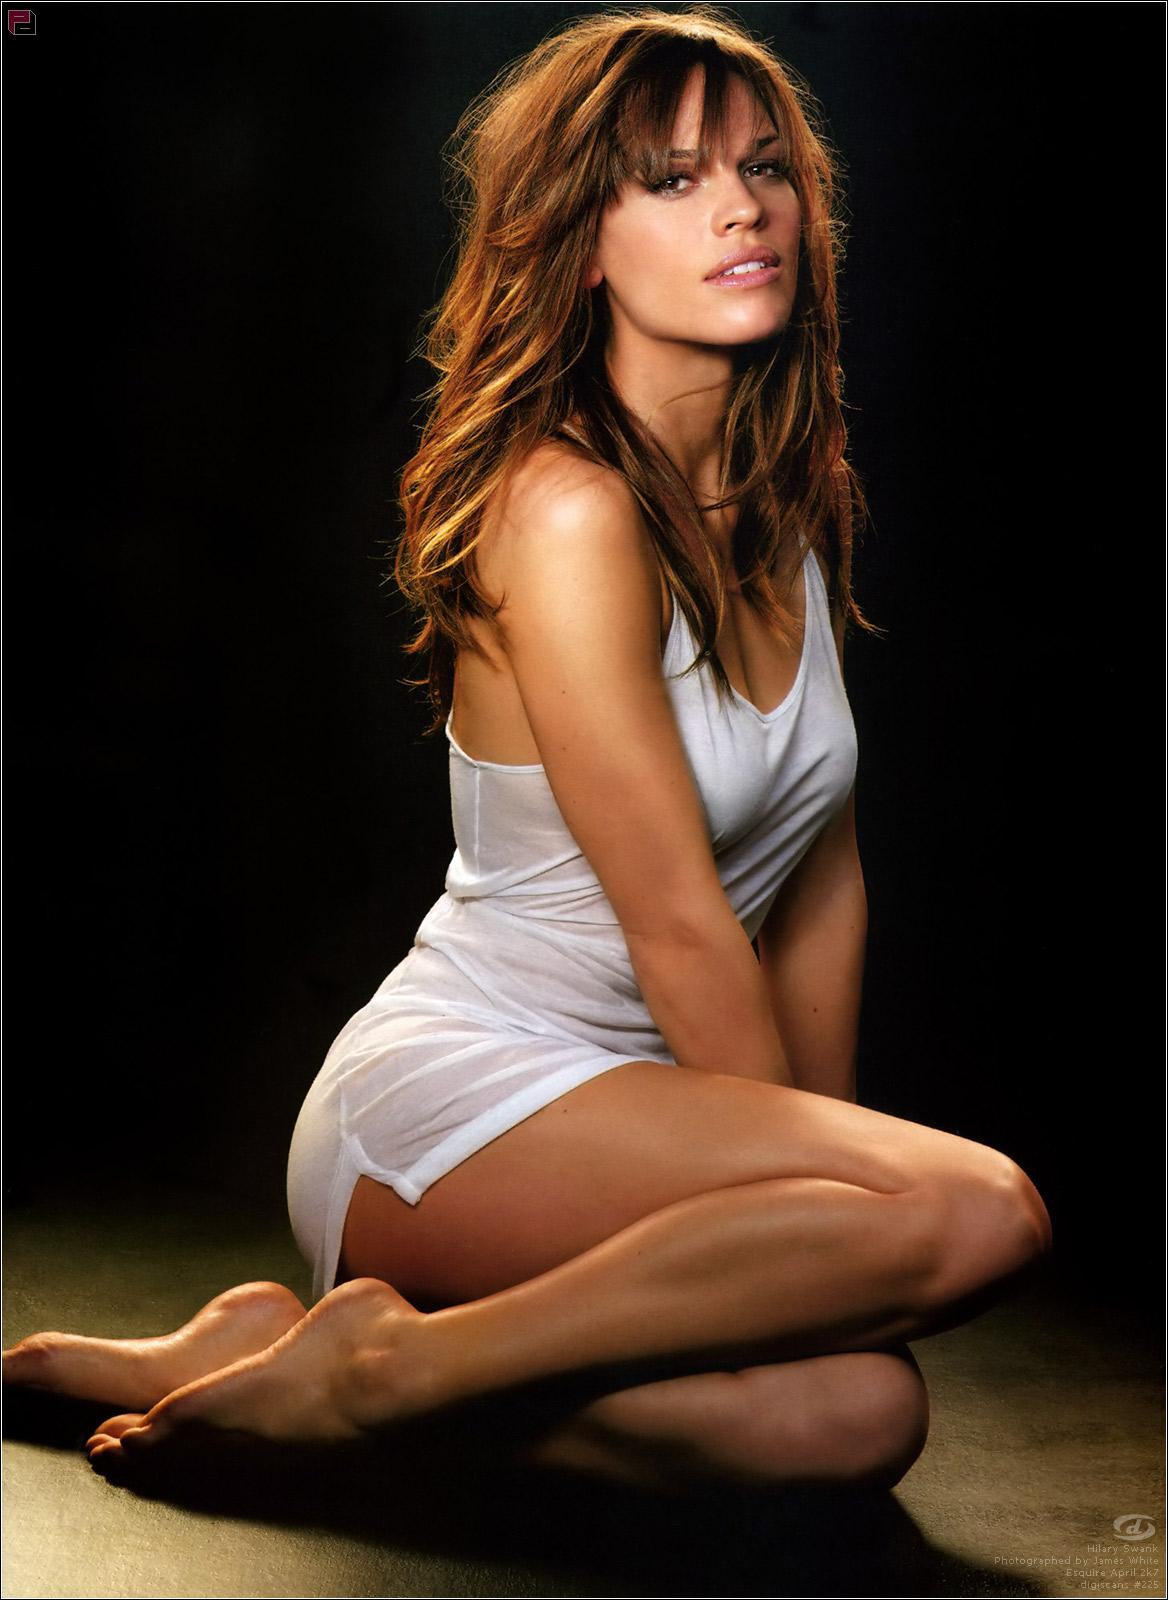 Hilary Swank fotos desnuda